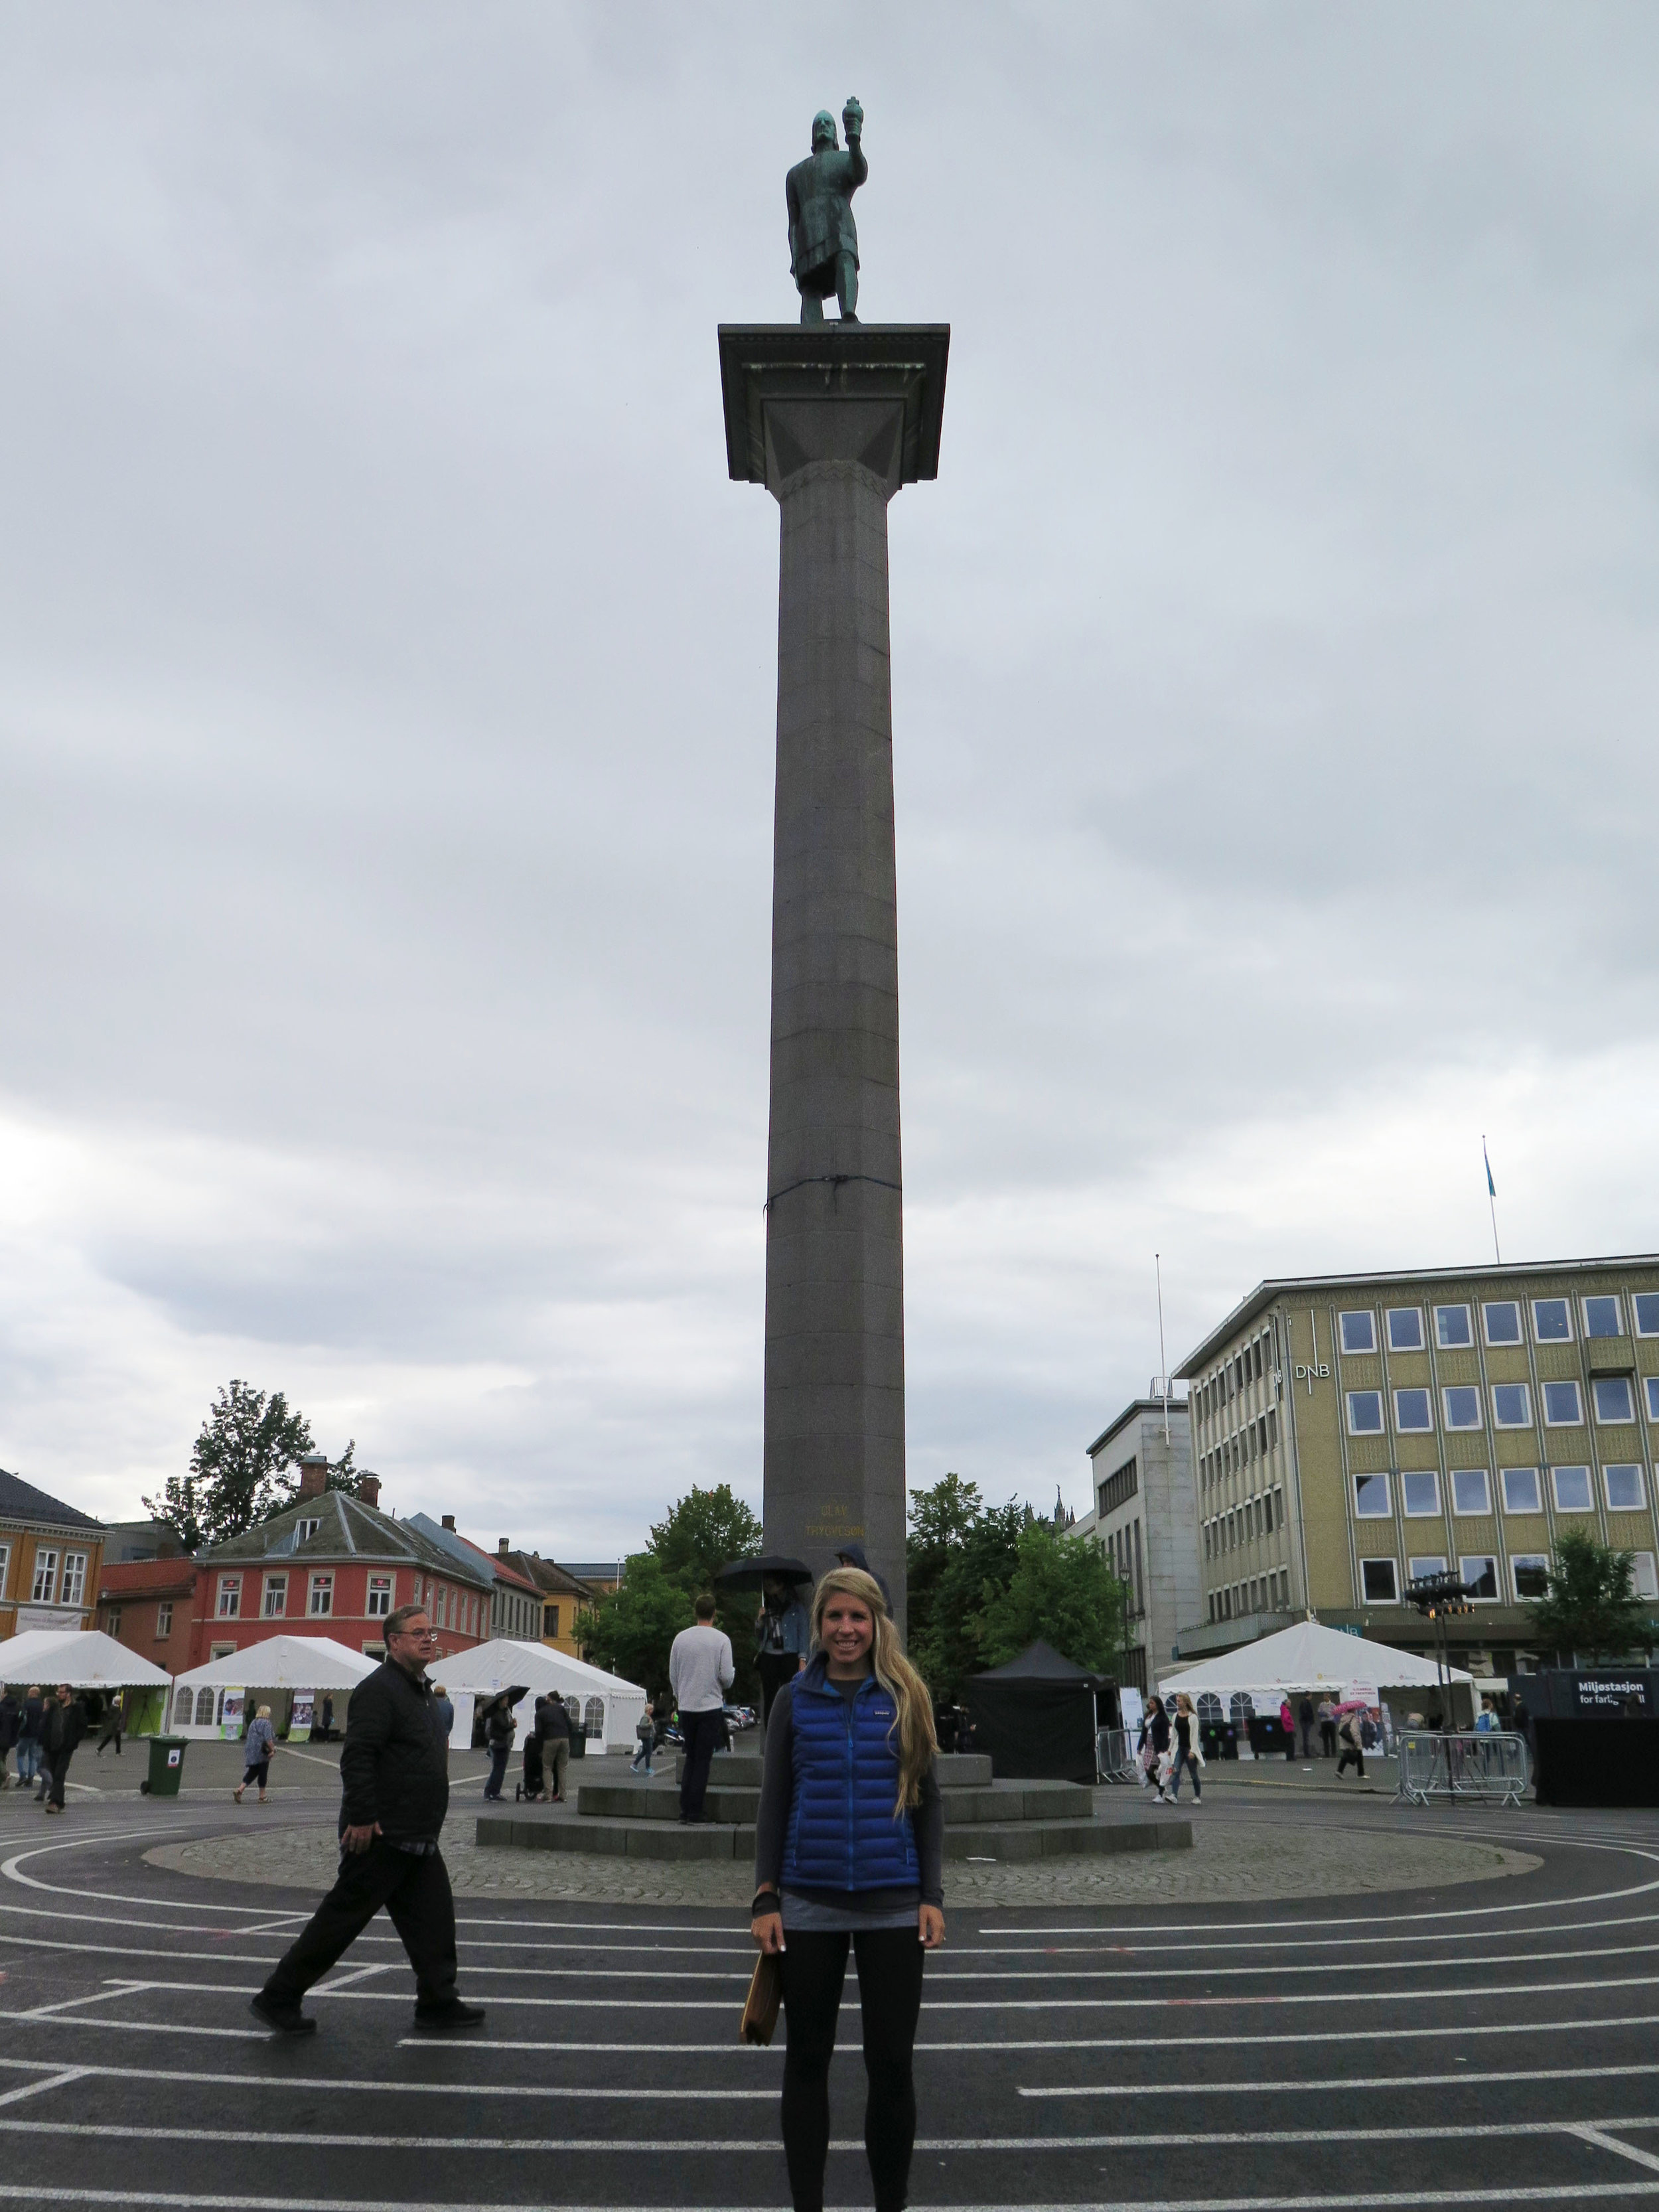 Picture in the town square